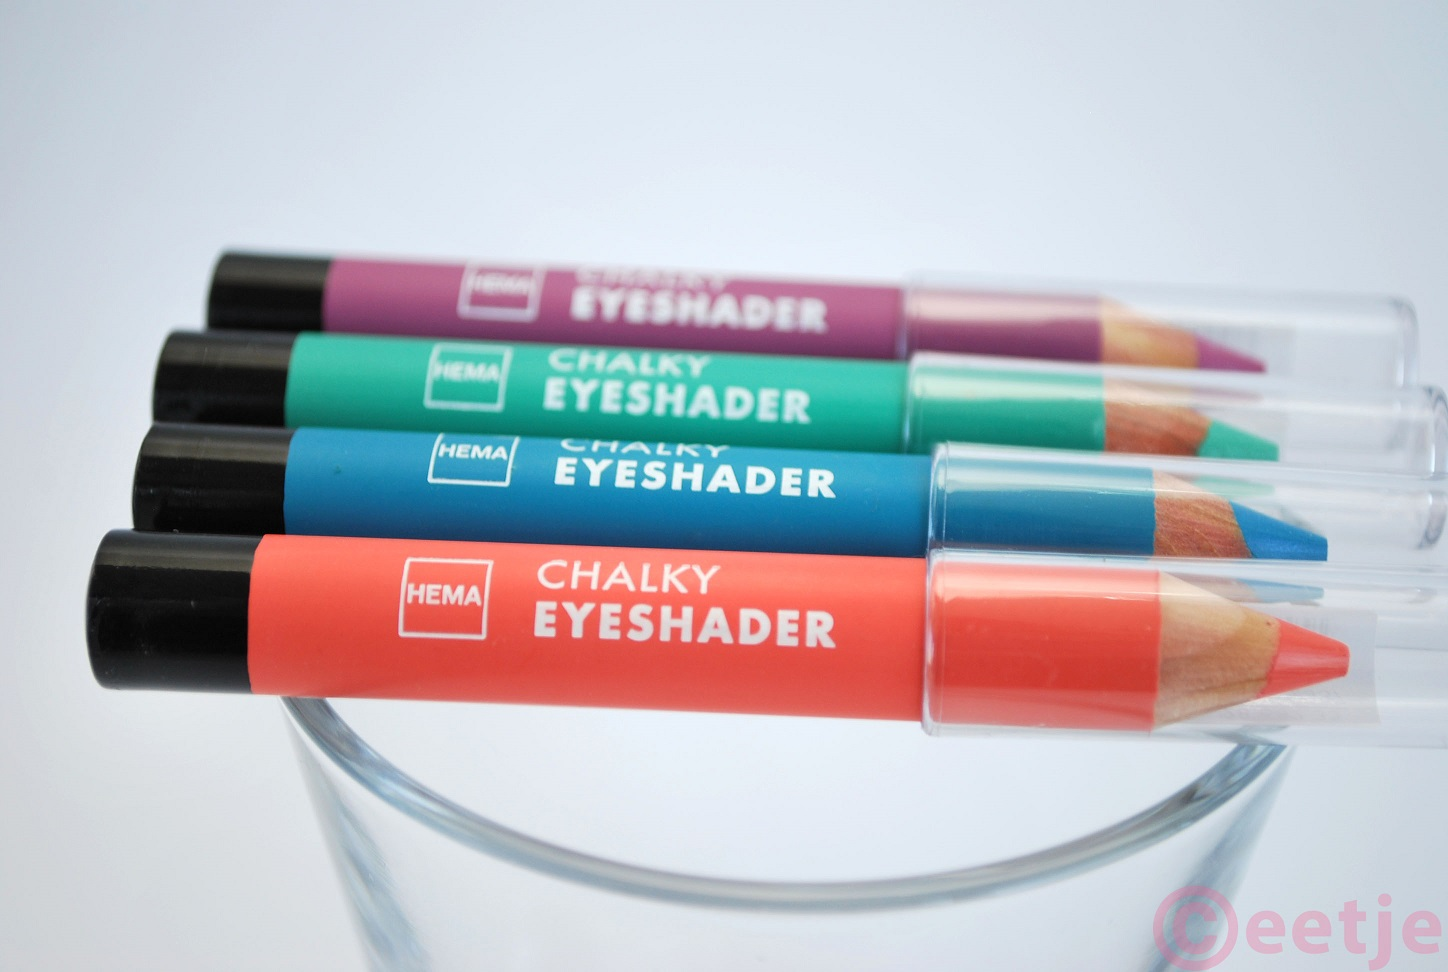 Review swatch chalky eyeshader hema mint groen